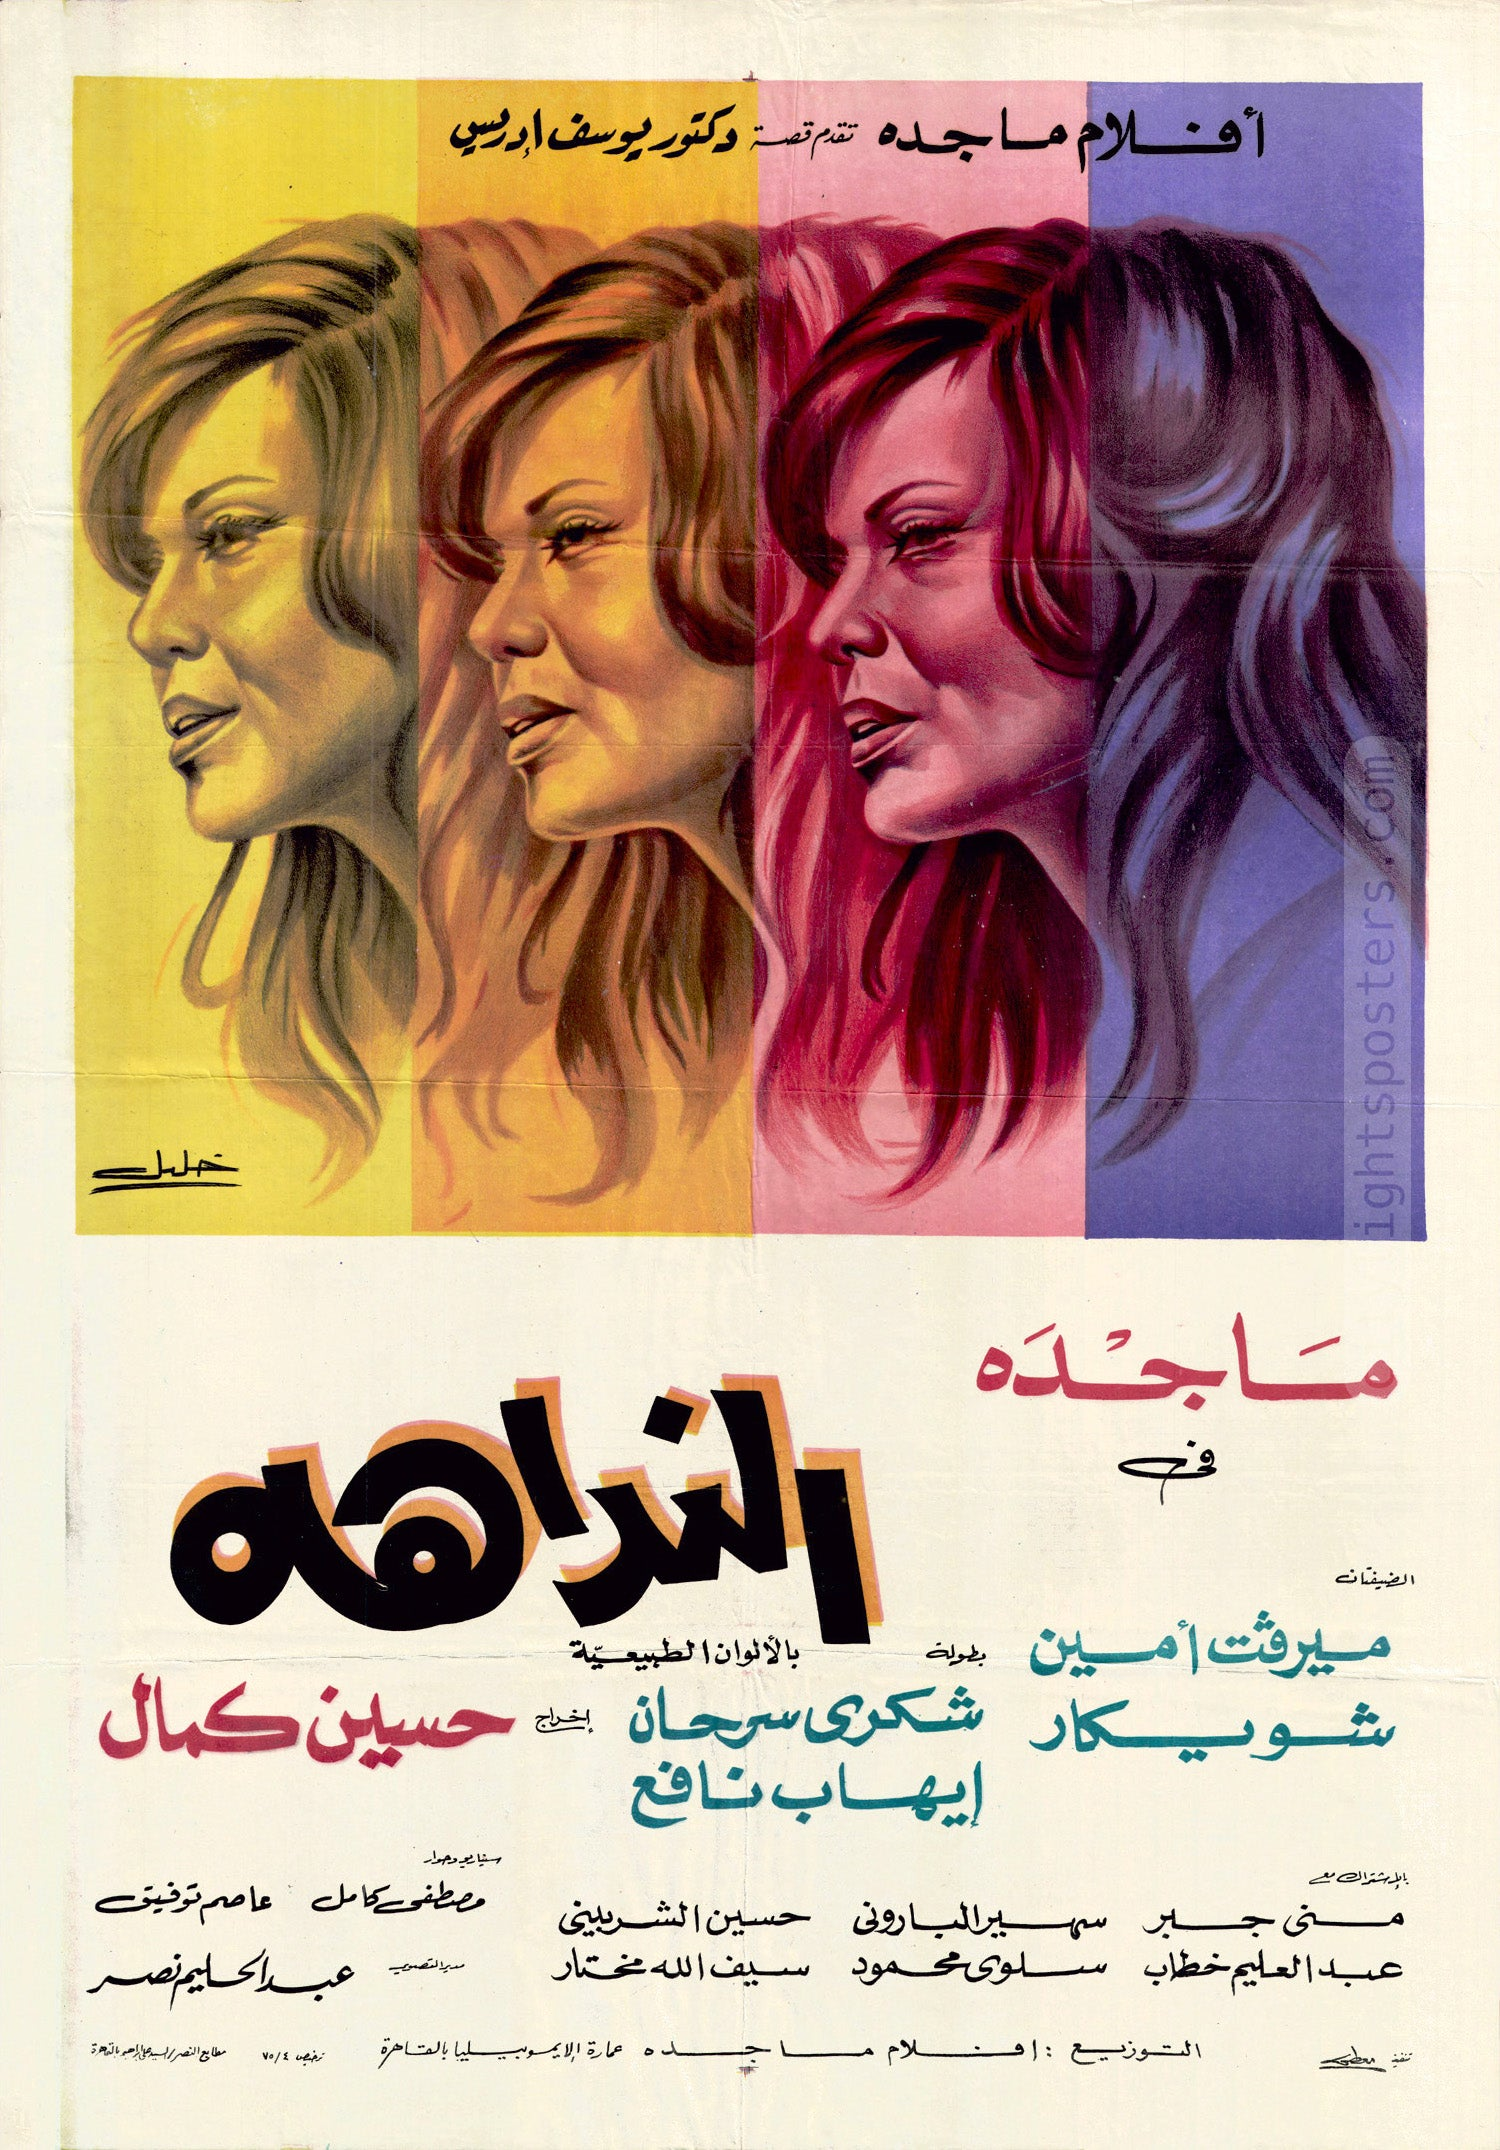 Poster picture of The Caller (1975), 70 x 100 cm. Designed by Khalil.